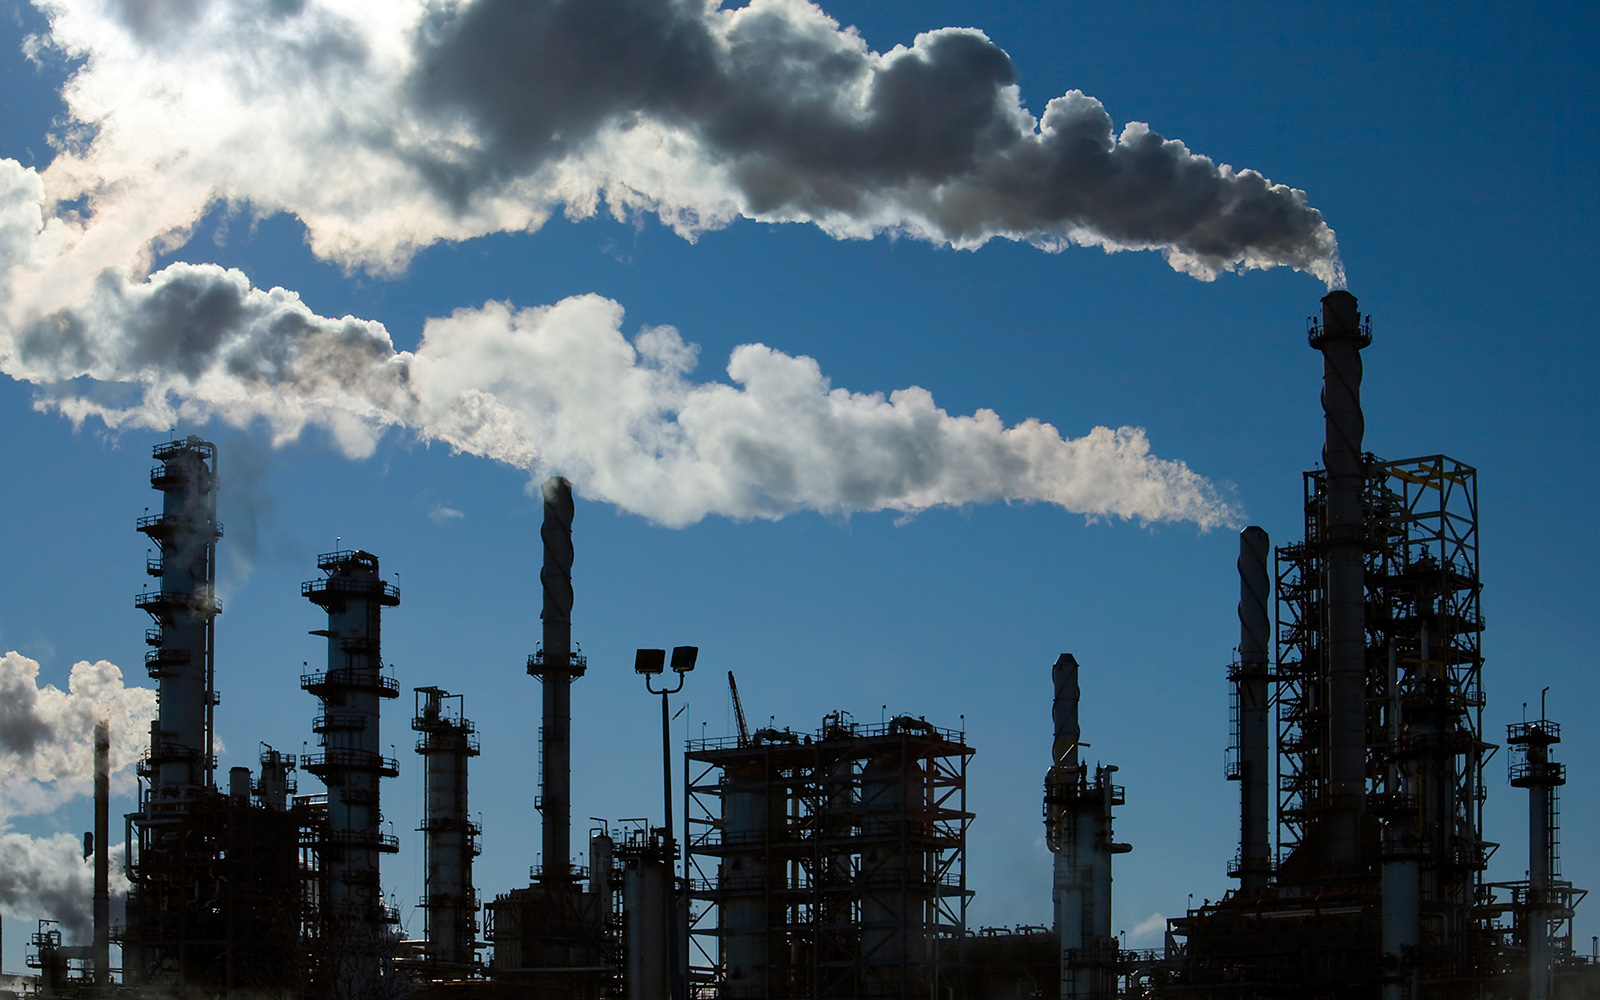 Petroleum refinery pipes with emissions pouring into the ambient air